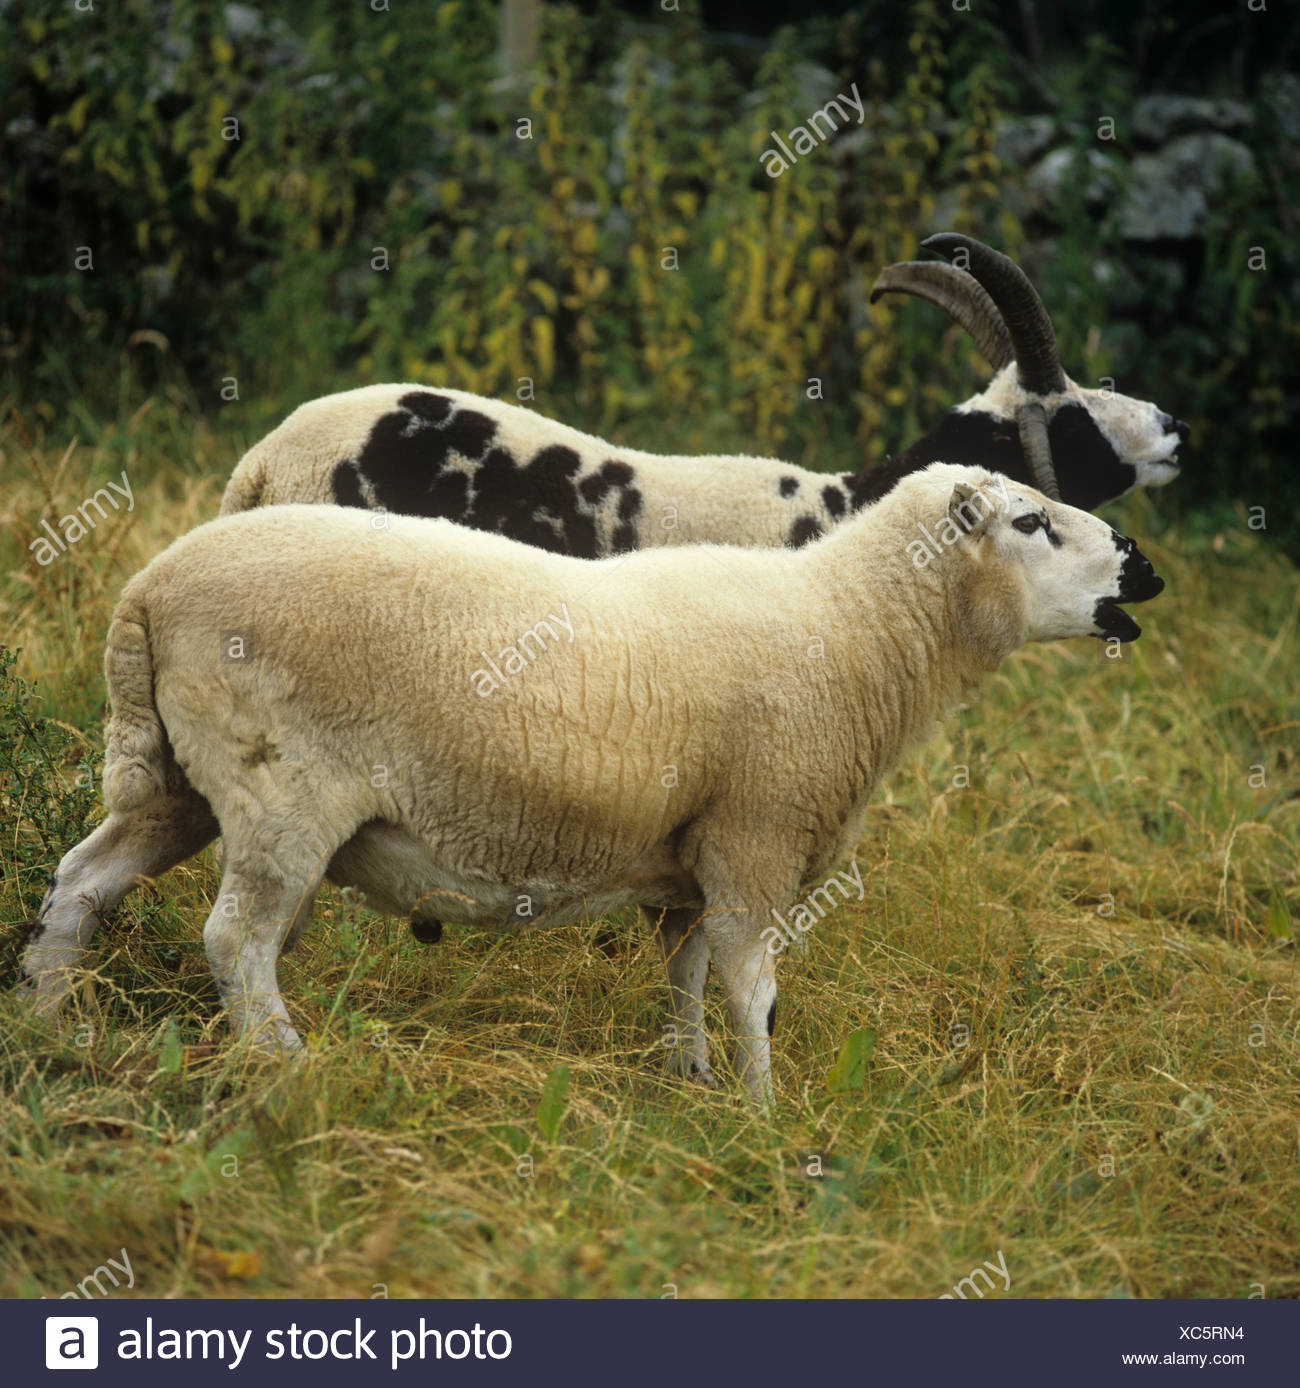 Jacob and Kerry hill rams bleating in upland grassland in Snowdonia North Wales - Stock Image